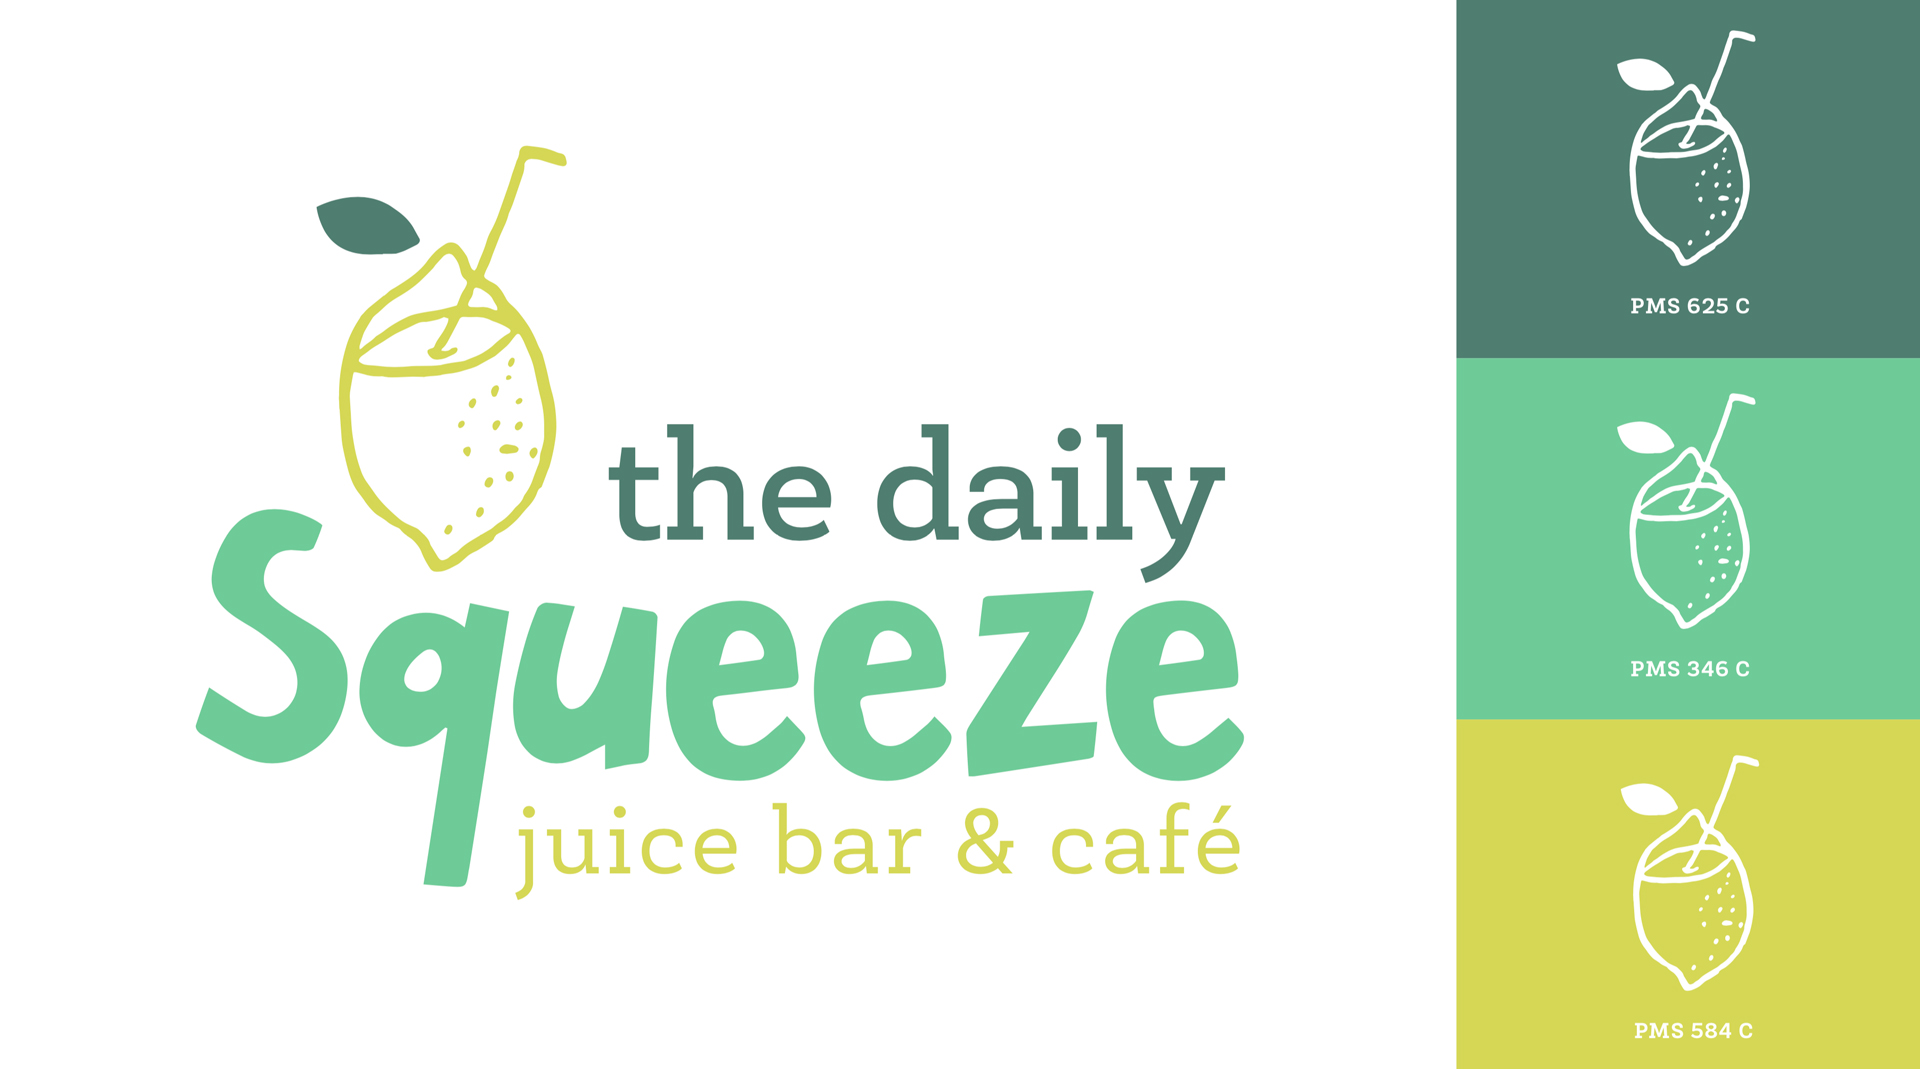 Juicy New Brand - We created a quirky, hand-drawn lemon icon as the basis of the logo that we knew could be used as an element (and pattern!) in other branded materials. Paired with whimsical type and a cheery color palette, this logo has us craving one of Danielle's signature juices (and the Florida sun!)